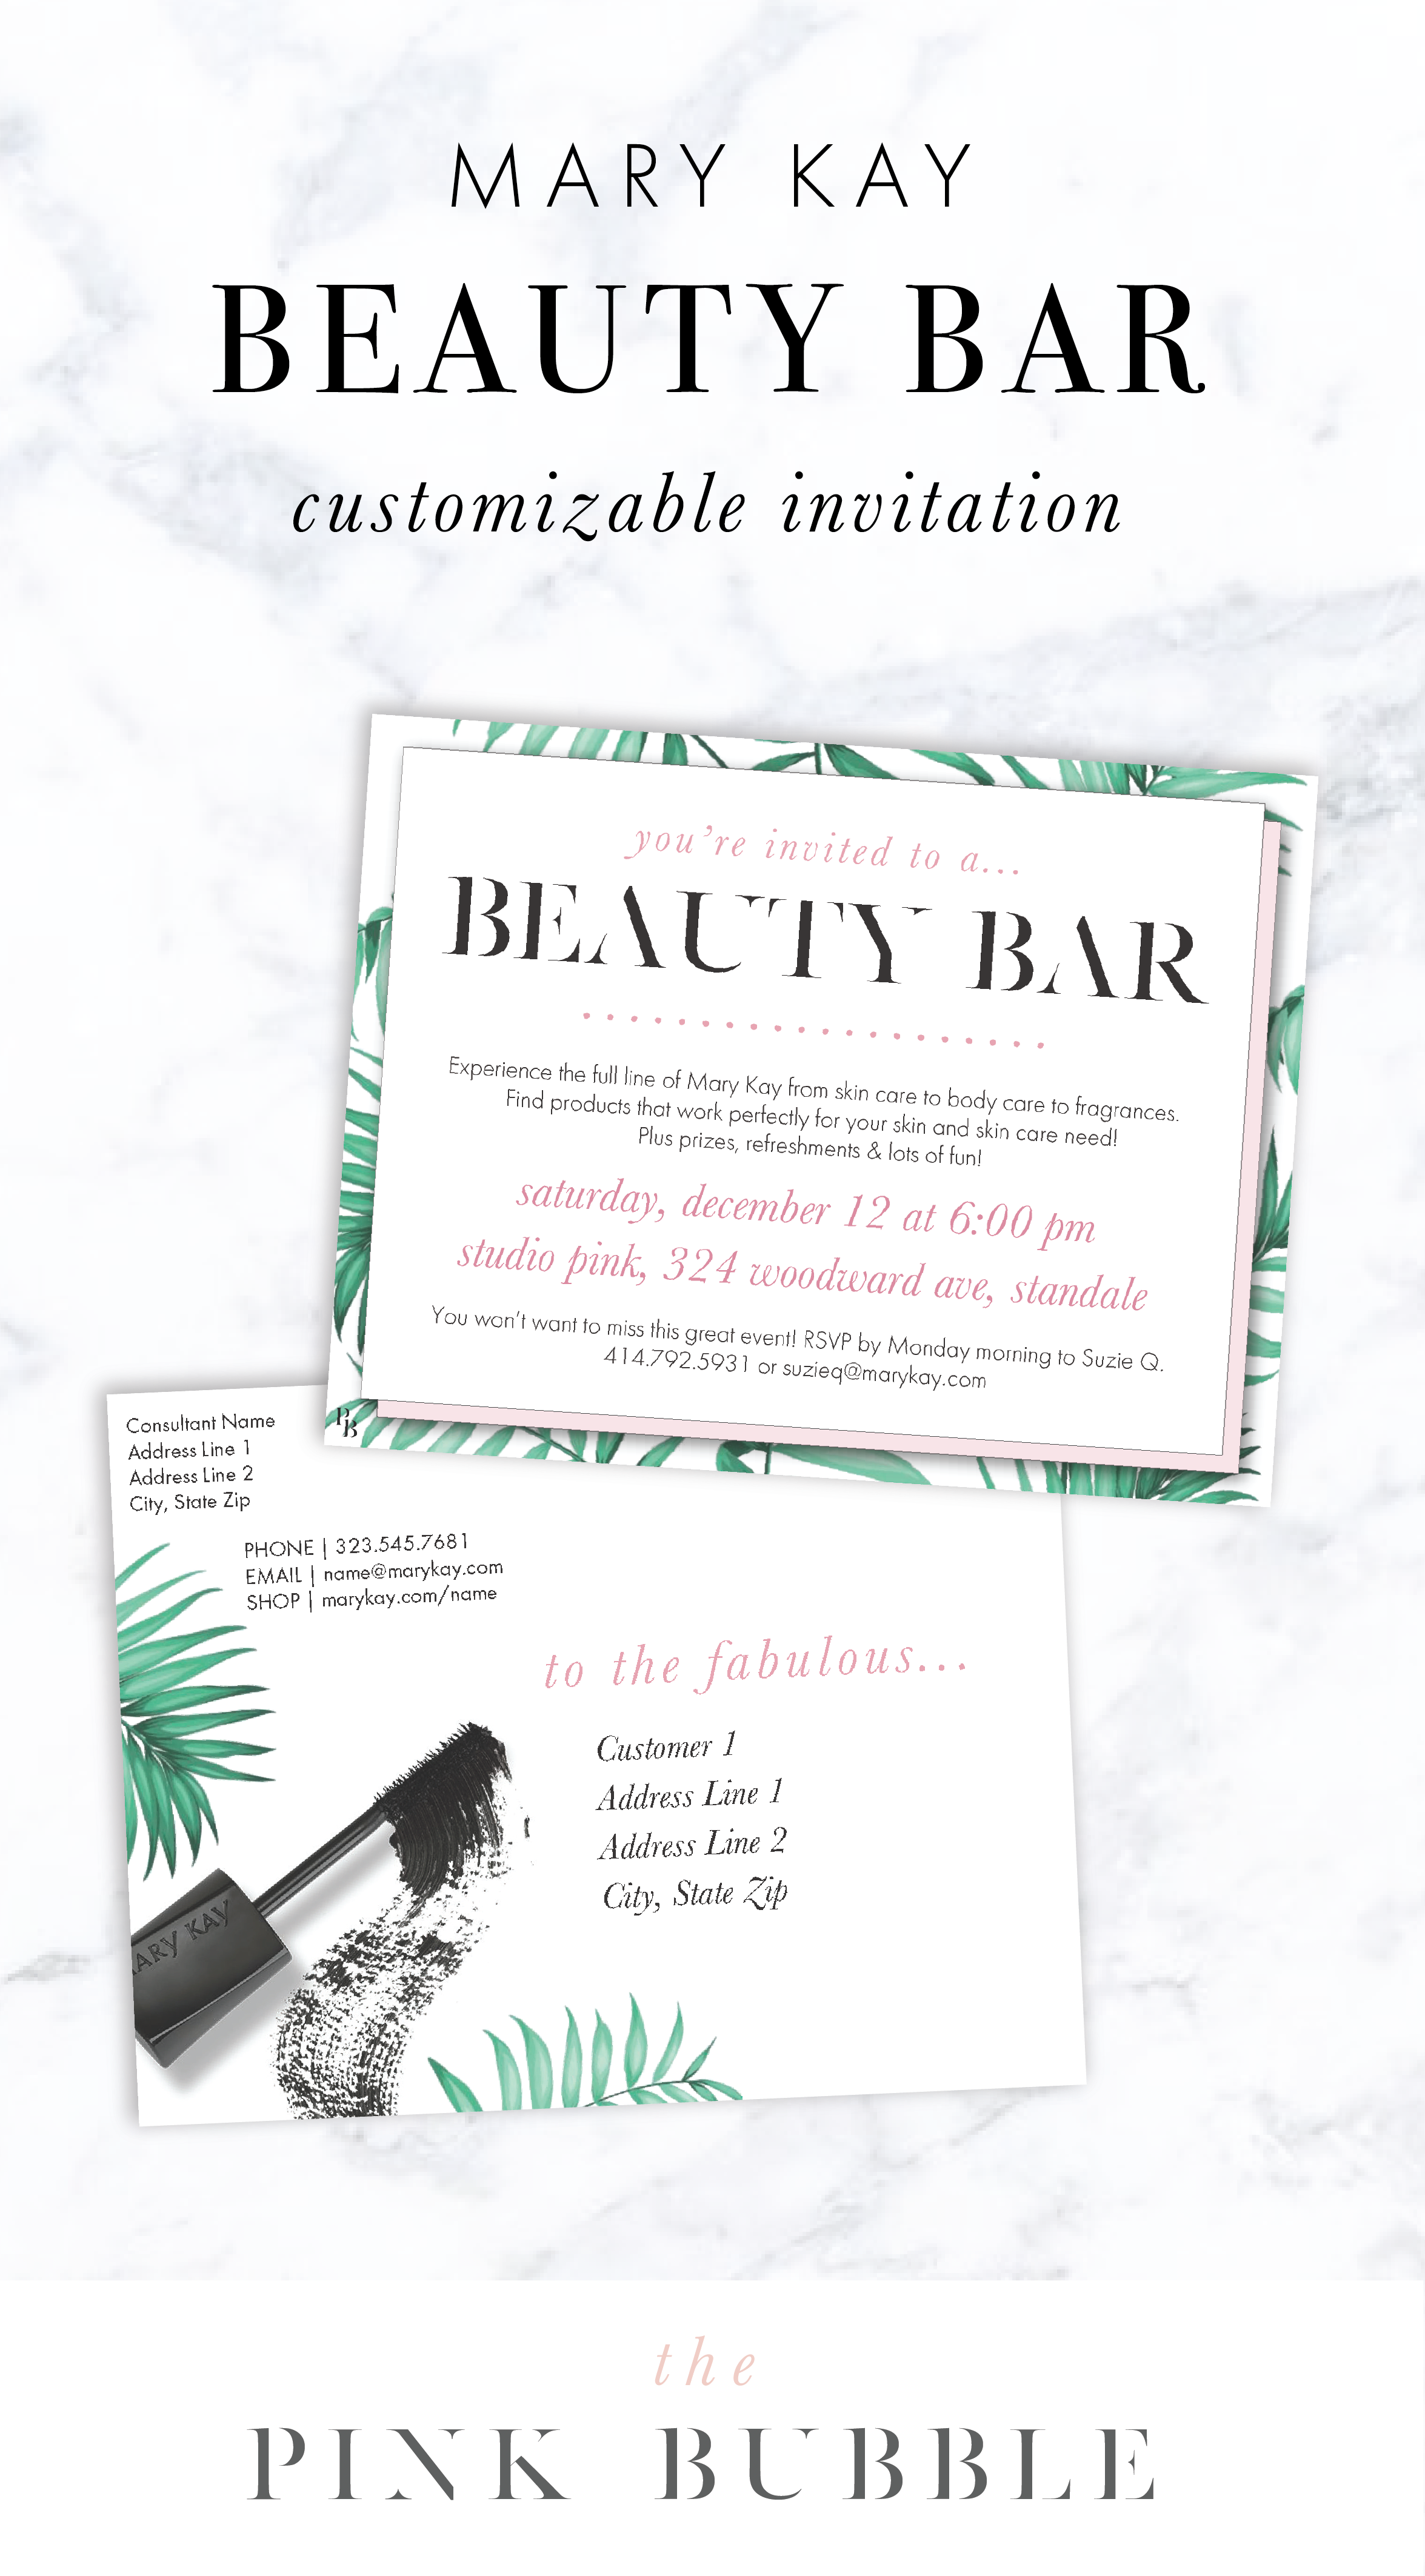 Mary Kay Beauty Bar Customizable Invitation Find It Only At Www